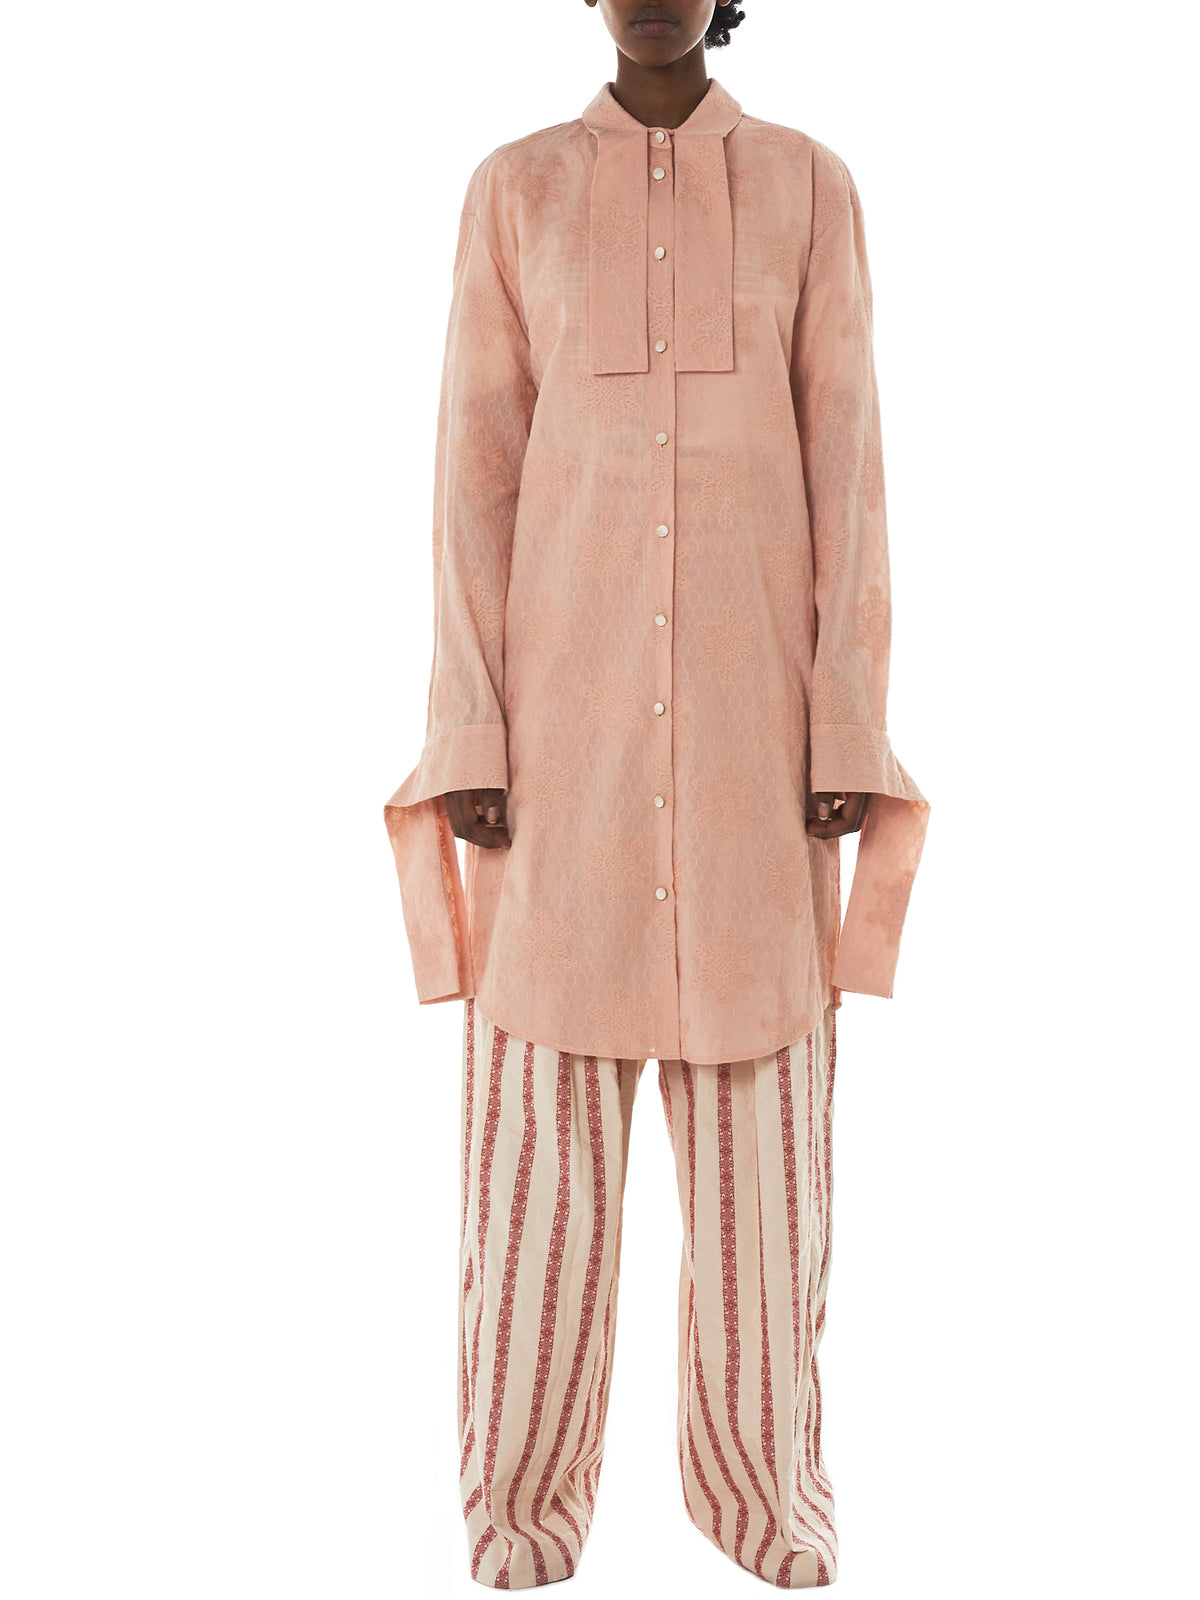 Daniel Gregory Natale Shirt Dress - Hlorenzo Front